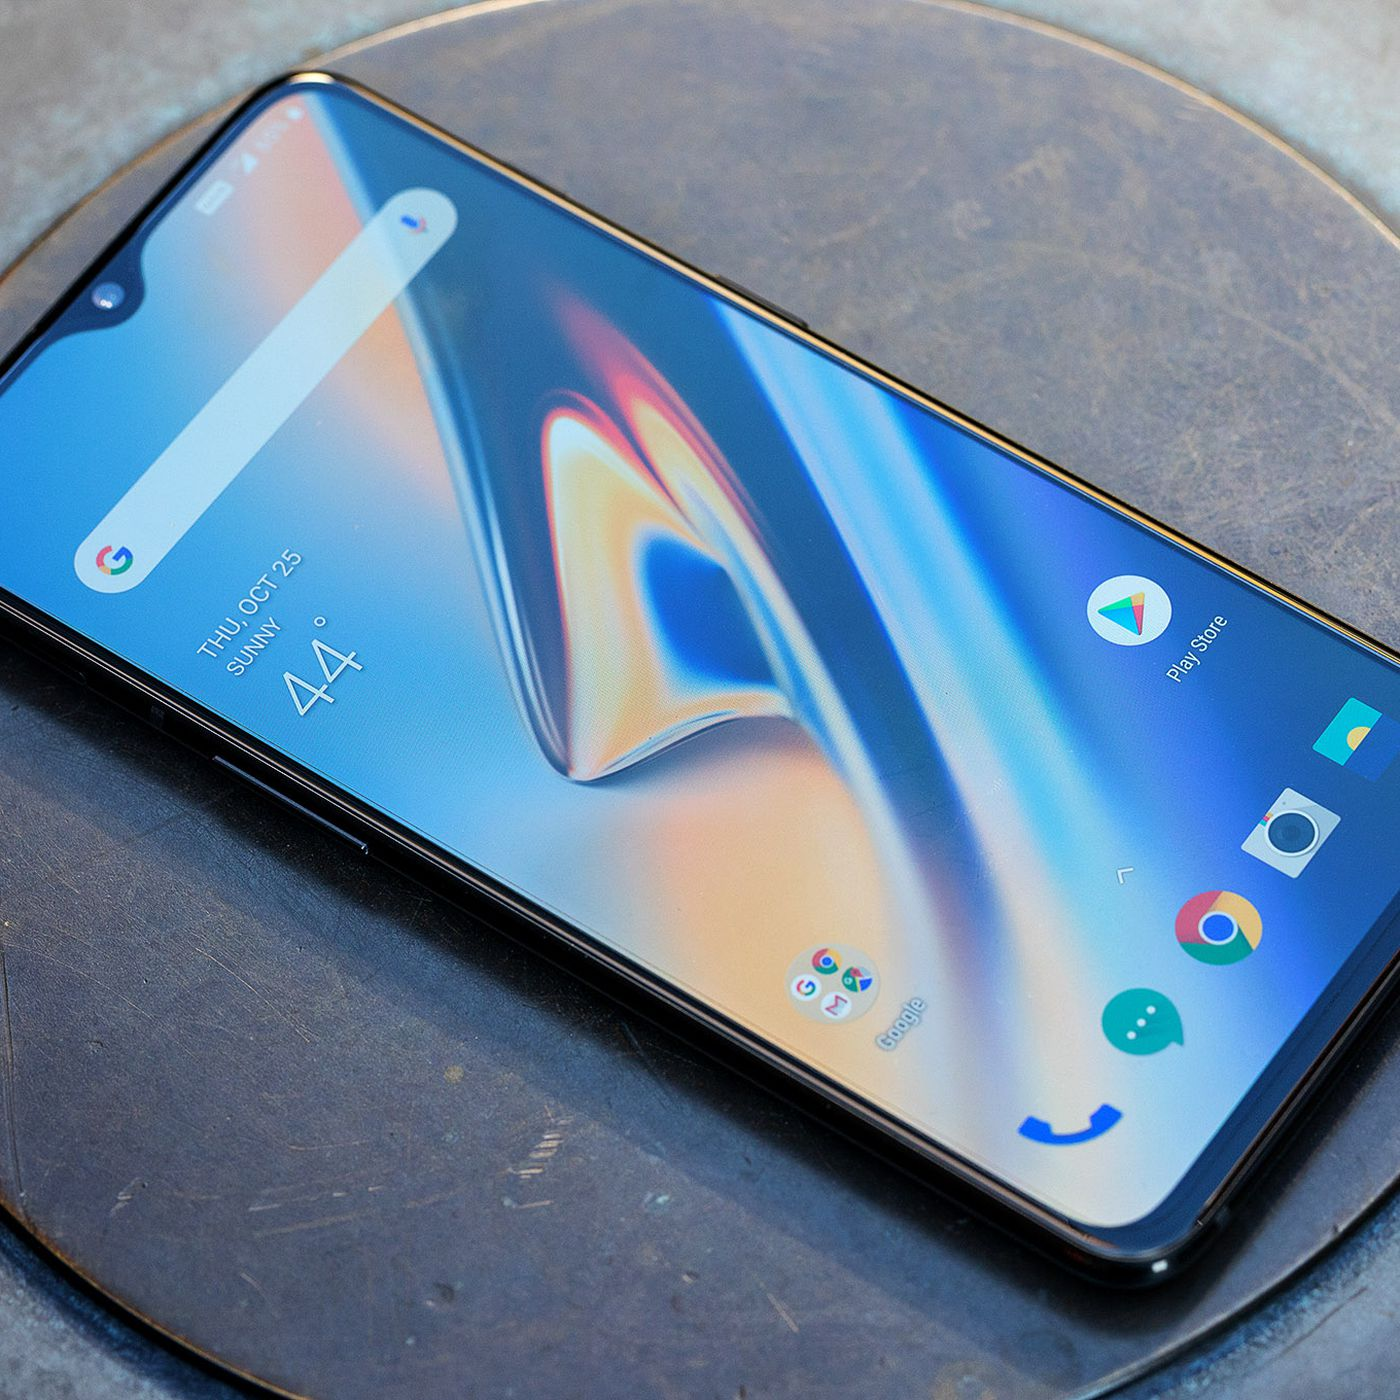 The OnePlus 6T might be the company's big break in America